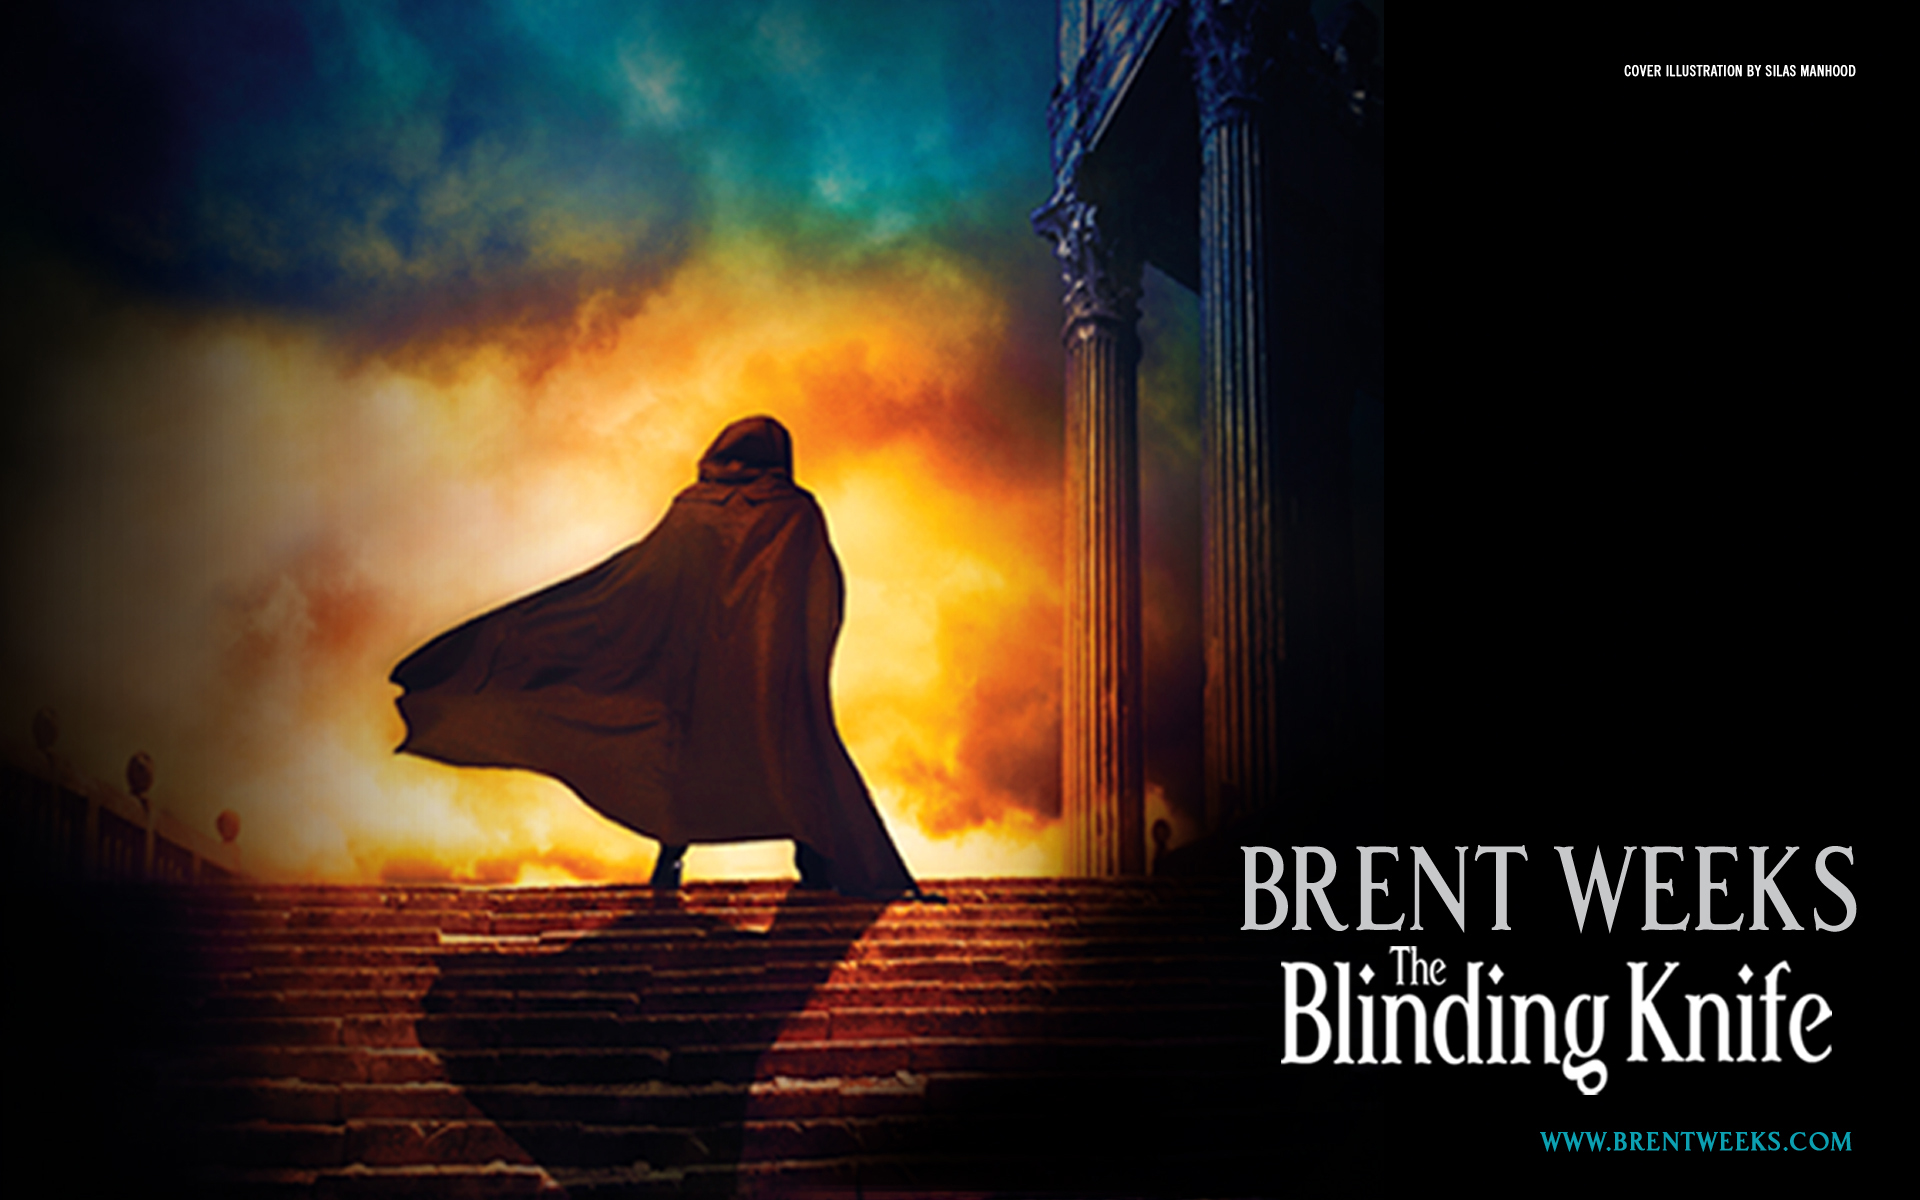 Wallpapers THE BLINDING KNIFE by Brent Weeks  Orbit Books